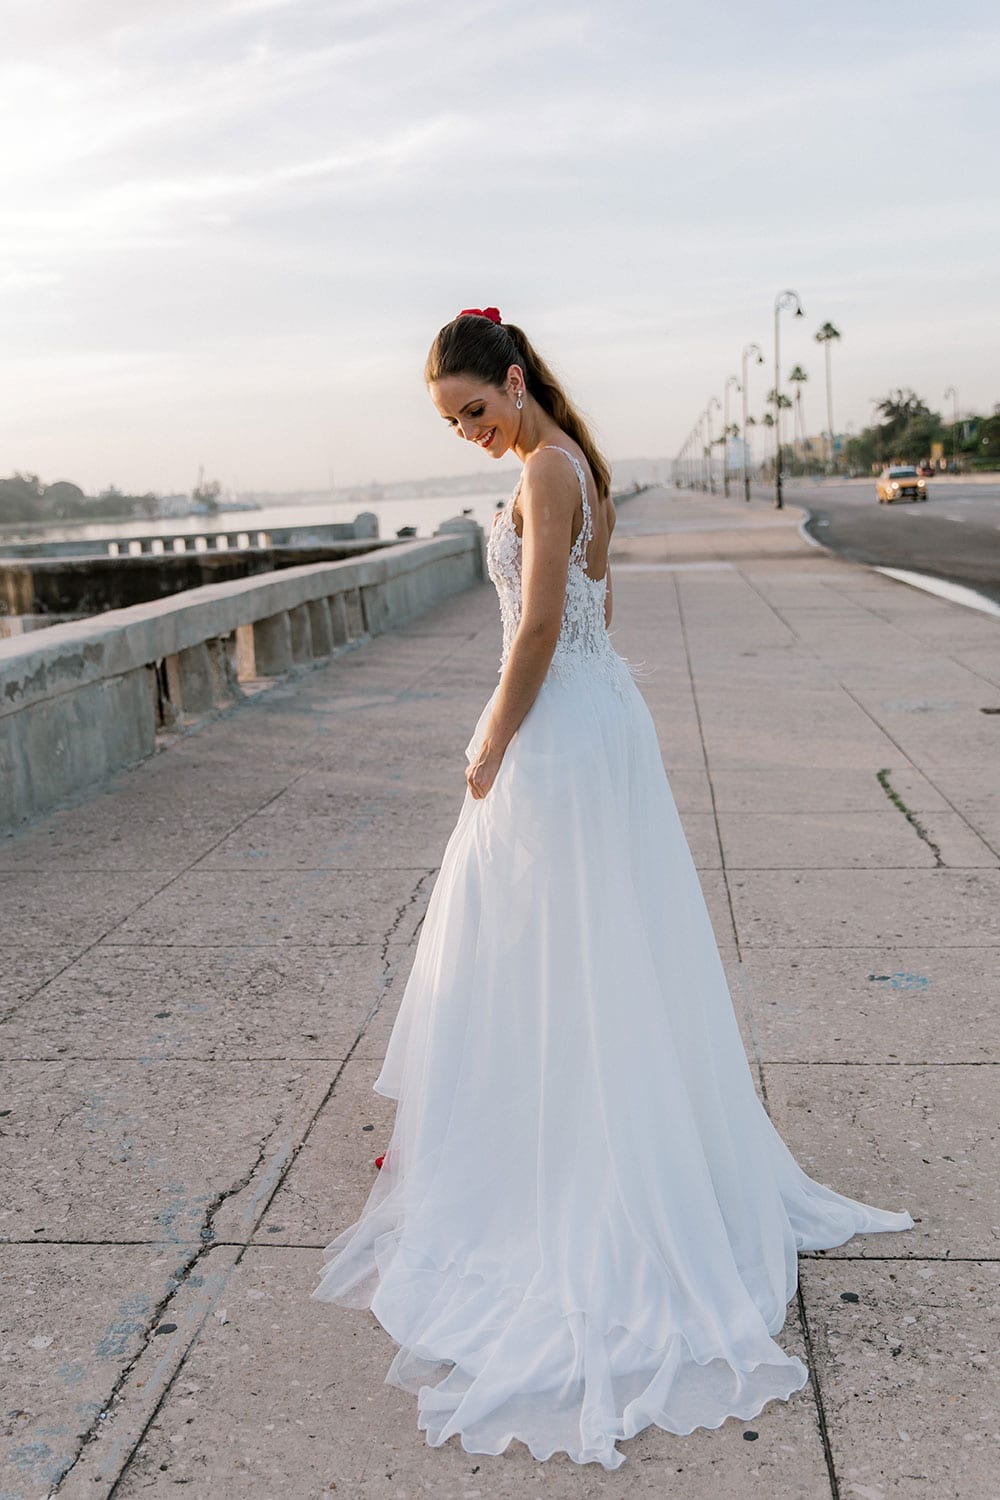 Model wearing Vinka Design Iris Wedding Dress, a Silk Chiffon Wedding Gown posed on a paved walkway in Havana with layers of dress showing movement